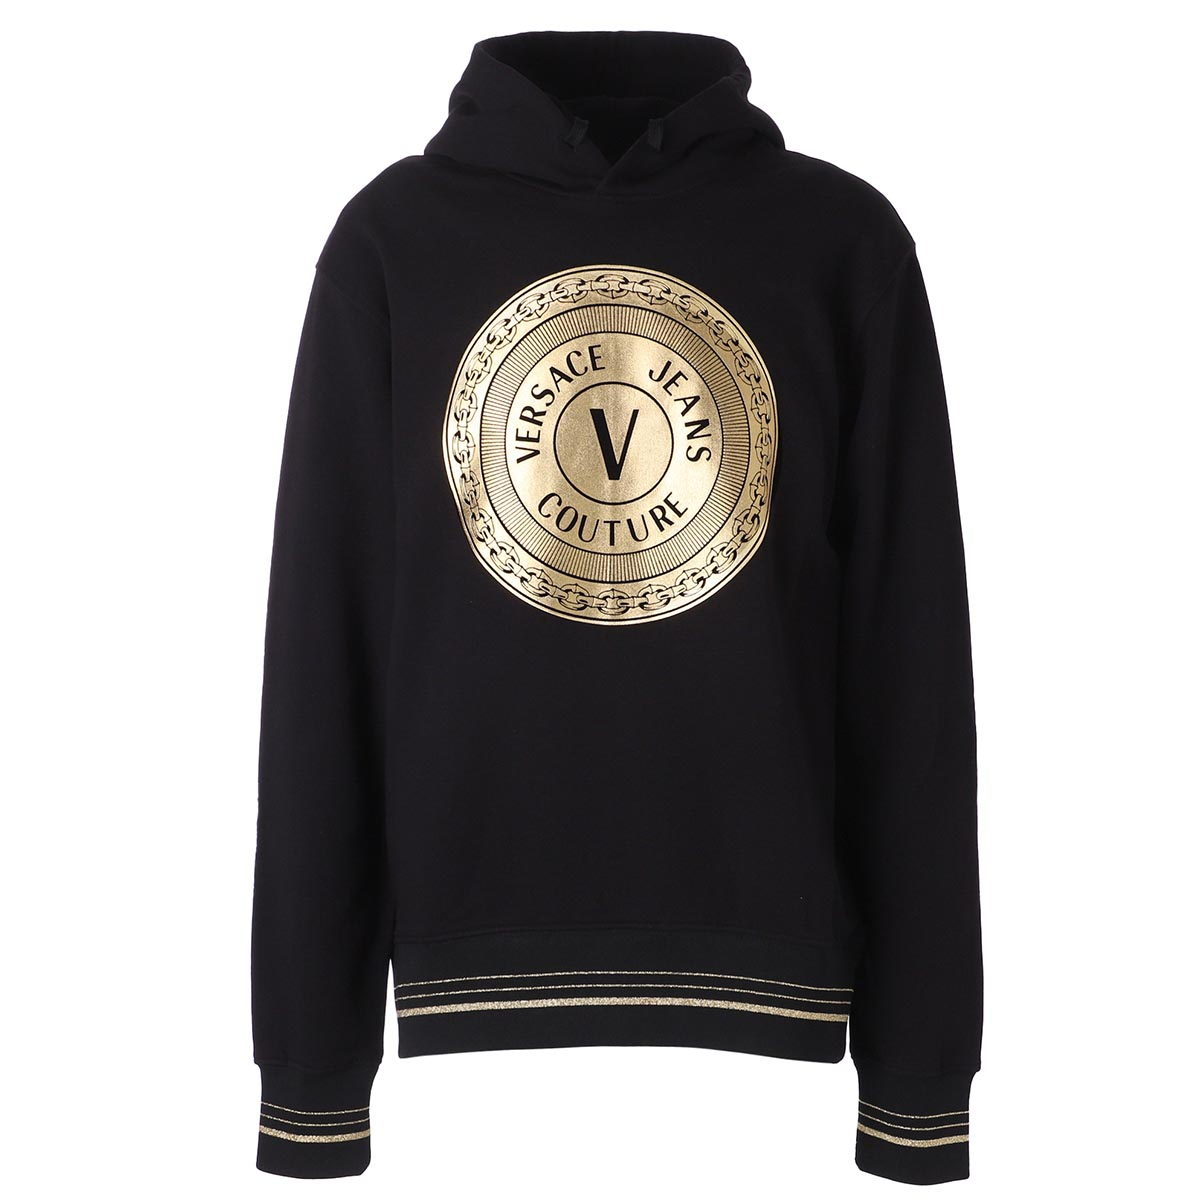 VERSACE JEANS COUTURE ヴェルサーチェ パーカ/フーディ メンズ